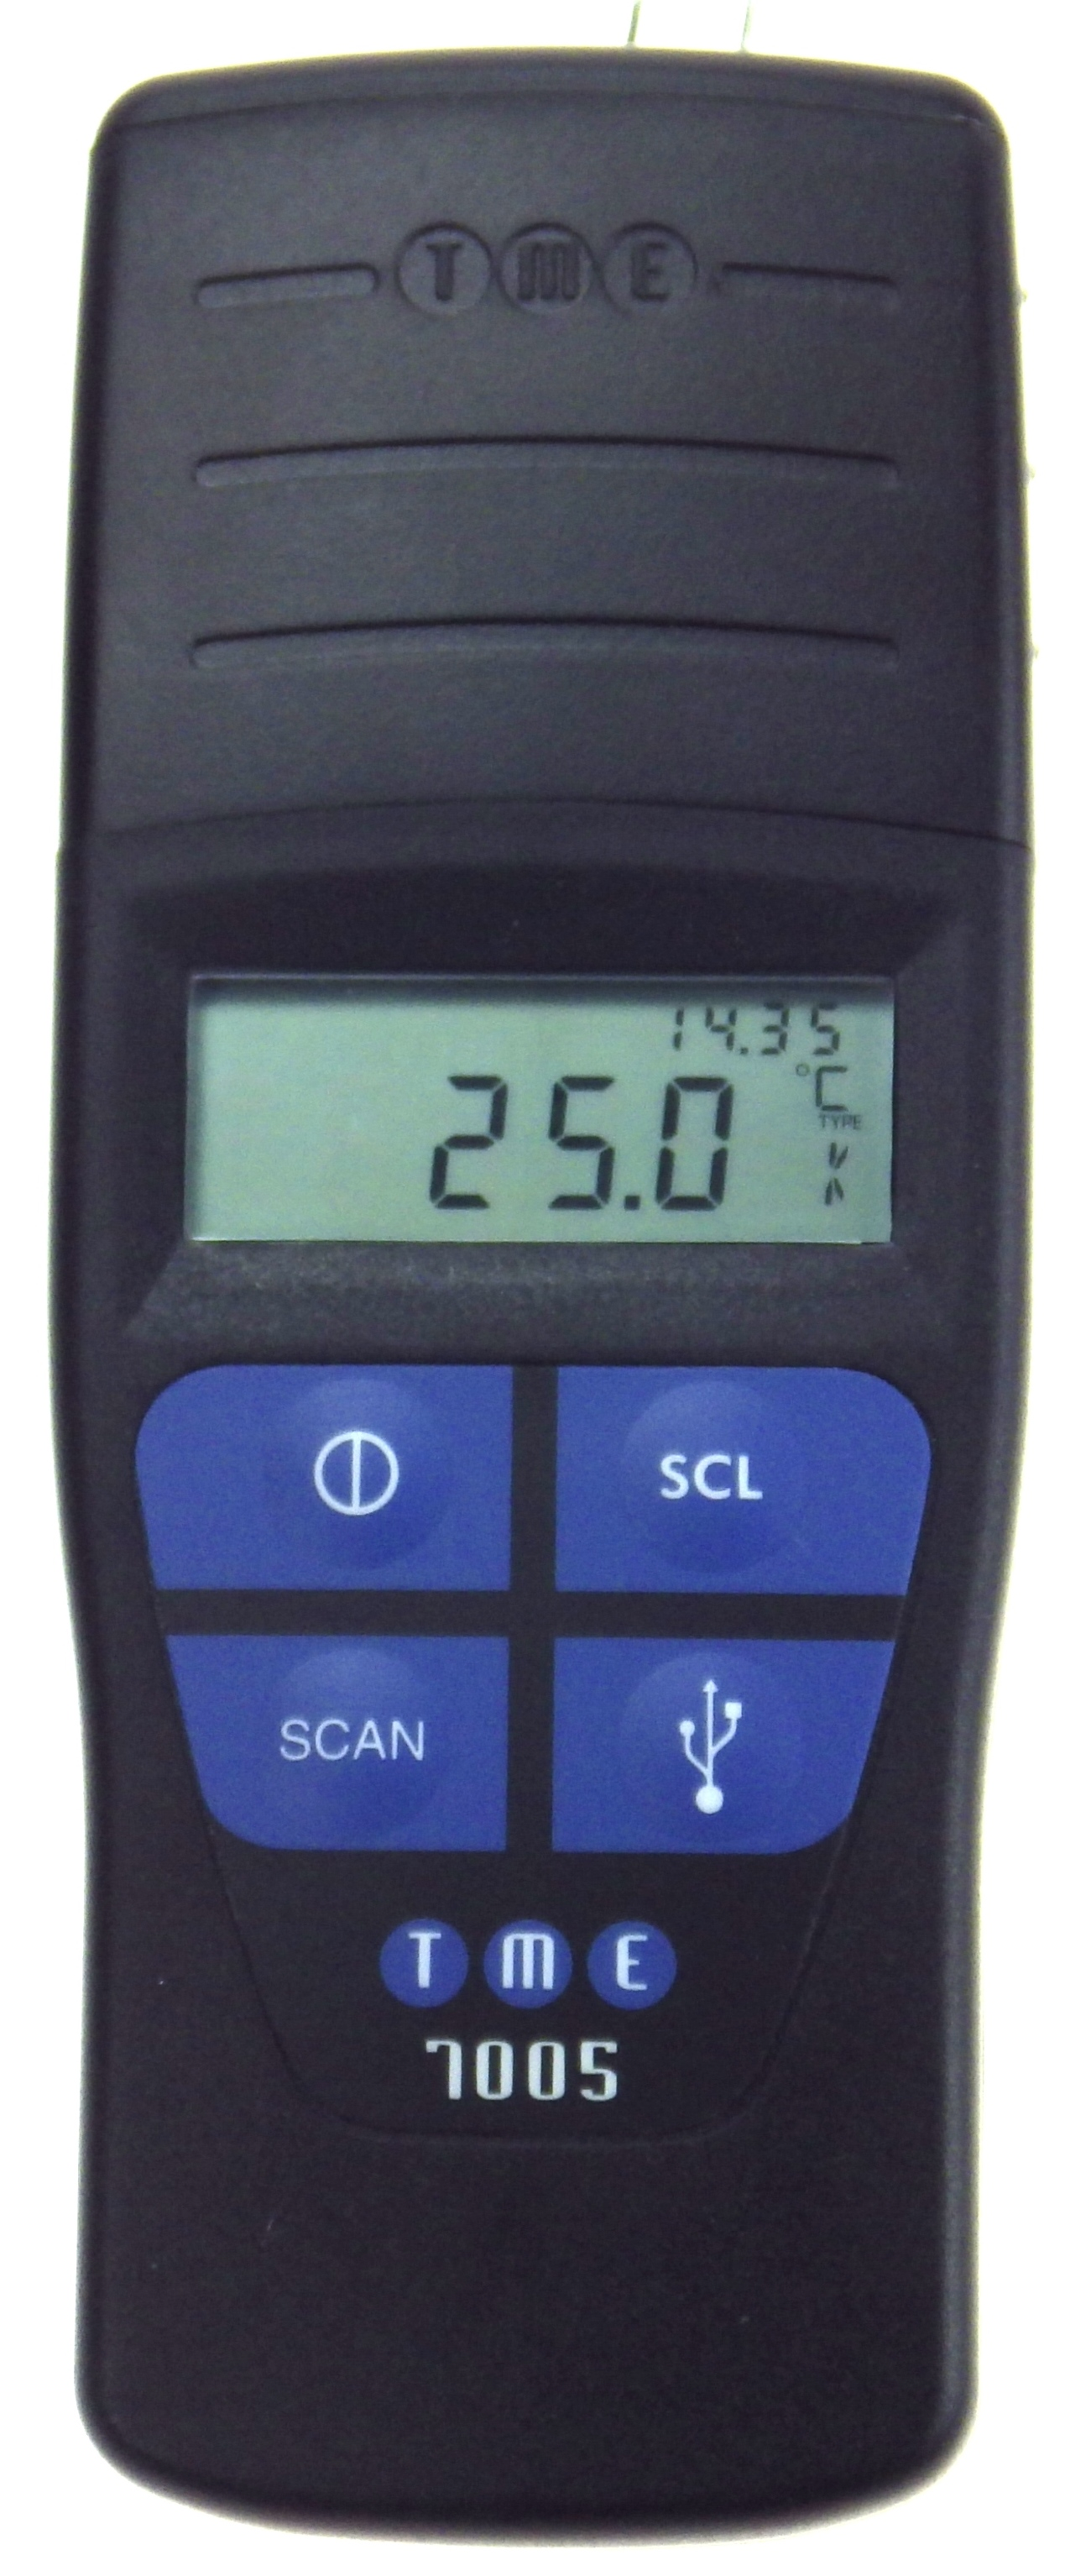 New USB Barcode Scanning Thermometer offers alternative data download methods